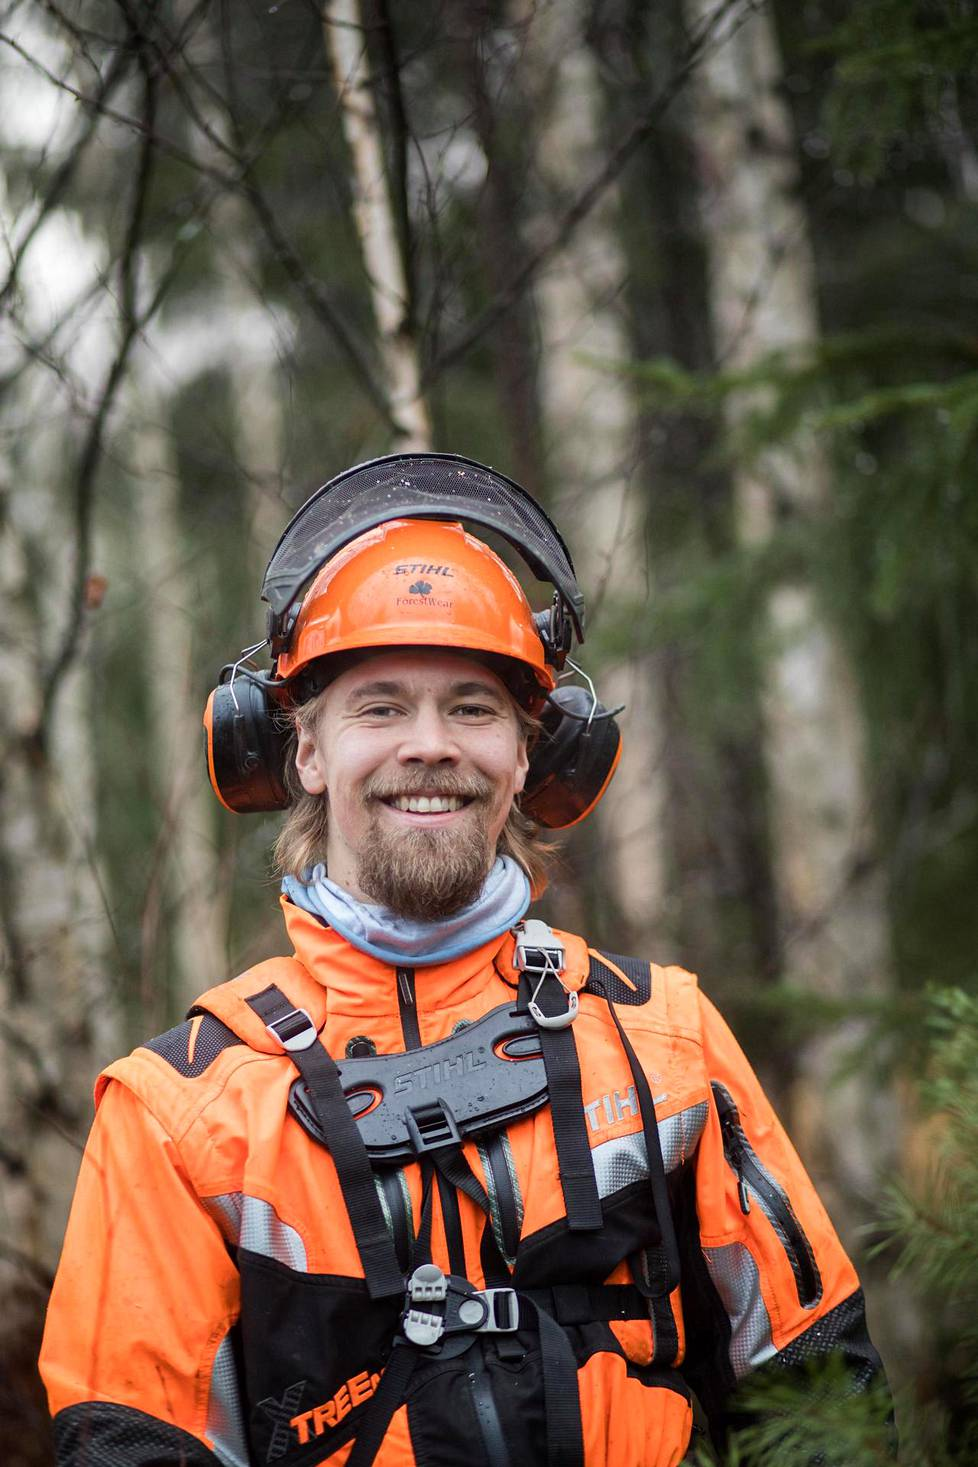 Roope Tonteri is studying to be a lumberjack with an apprenticeship.